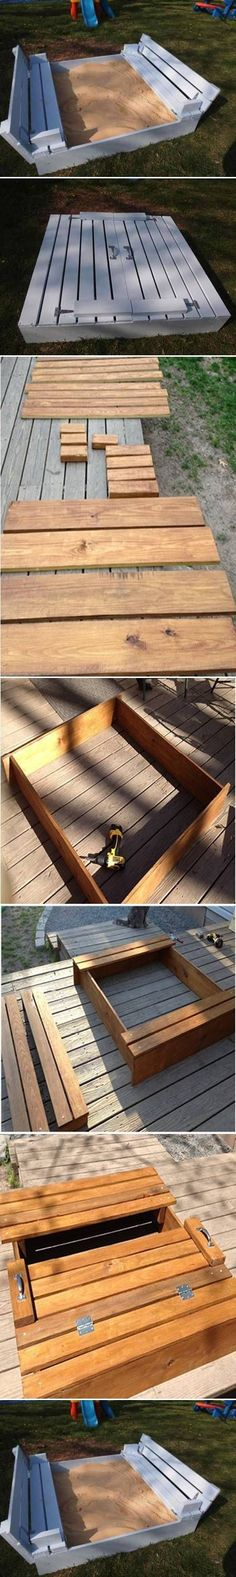 How to make a sandbox for kids diy diy ideas diy crafts do it yourself diy projects sandbox kids diy projects